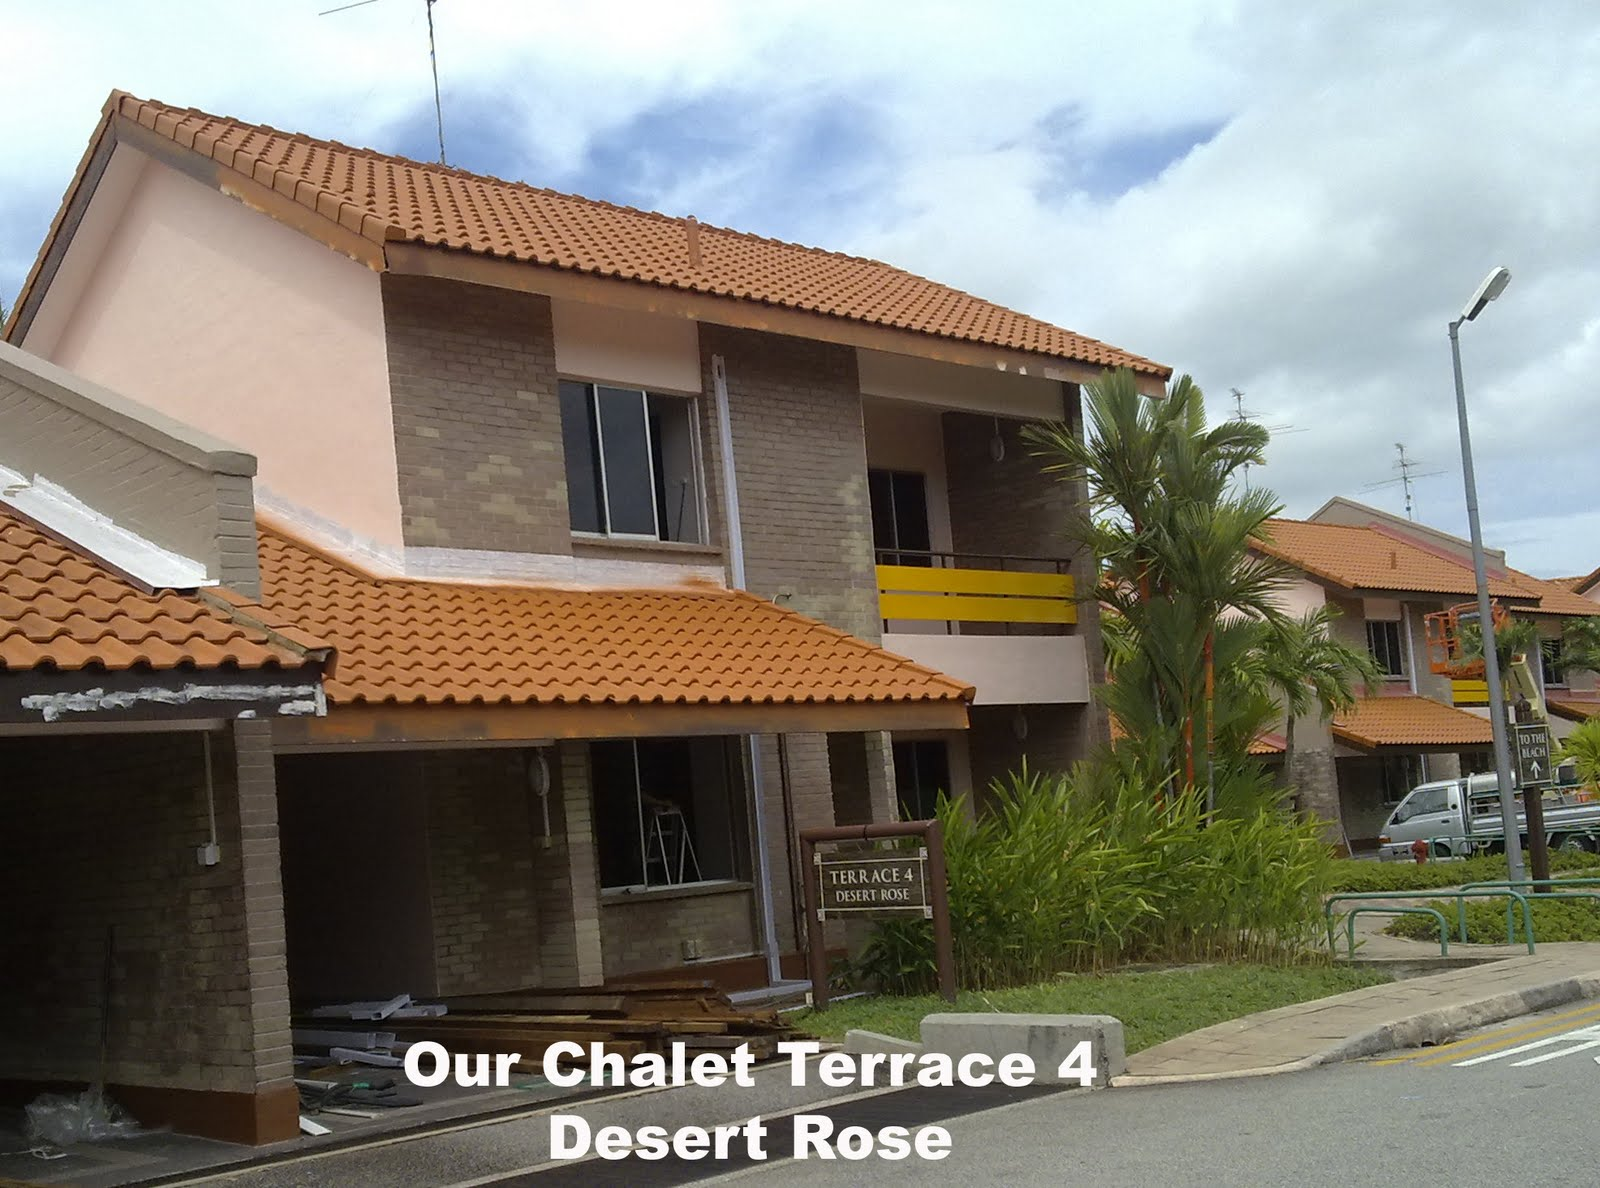 Aloha Chalet Pictures: Aloha Loyang and ALOHA CHANGI, we have ...